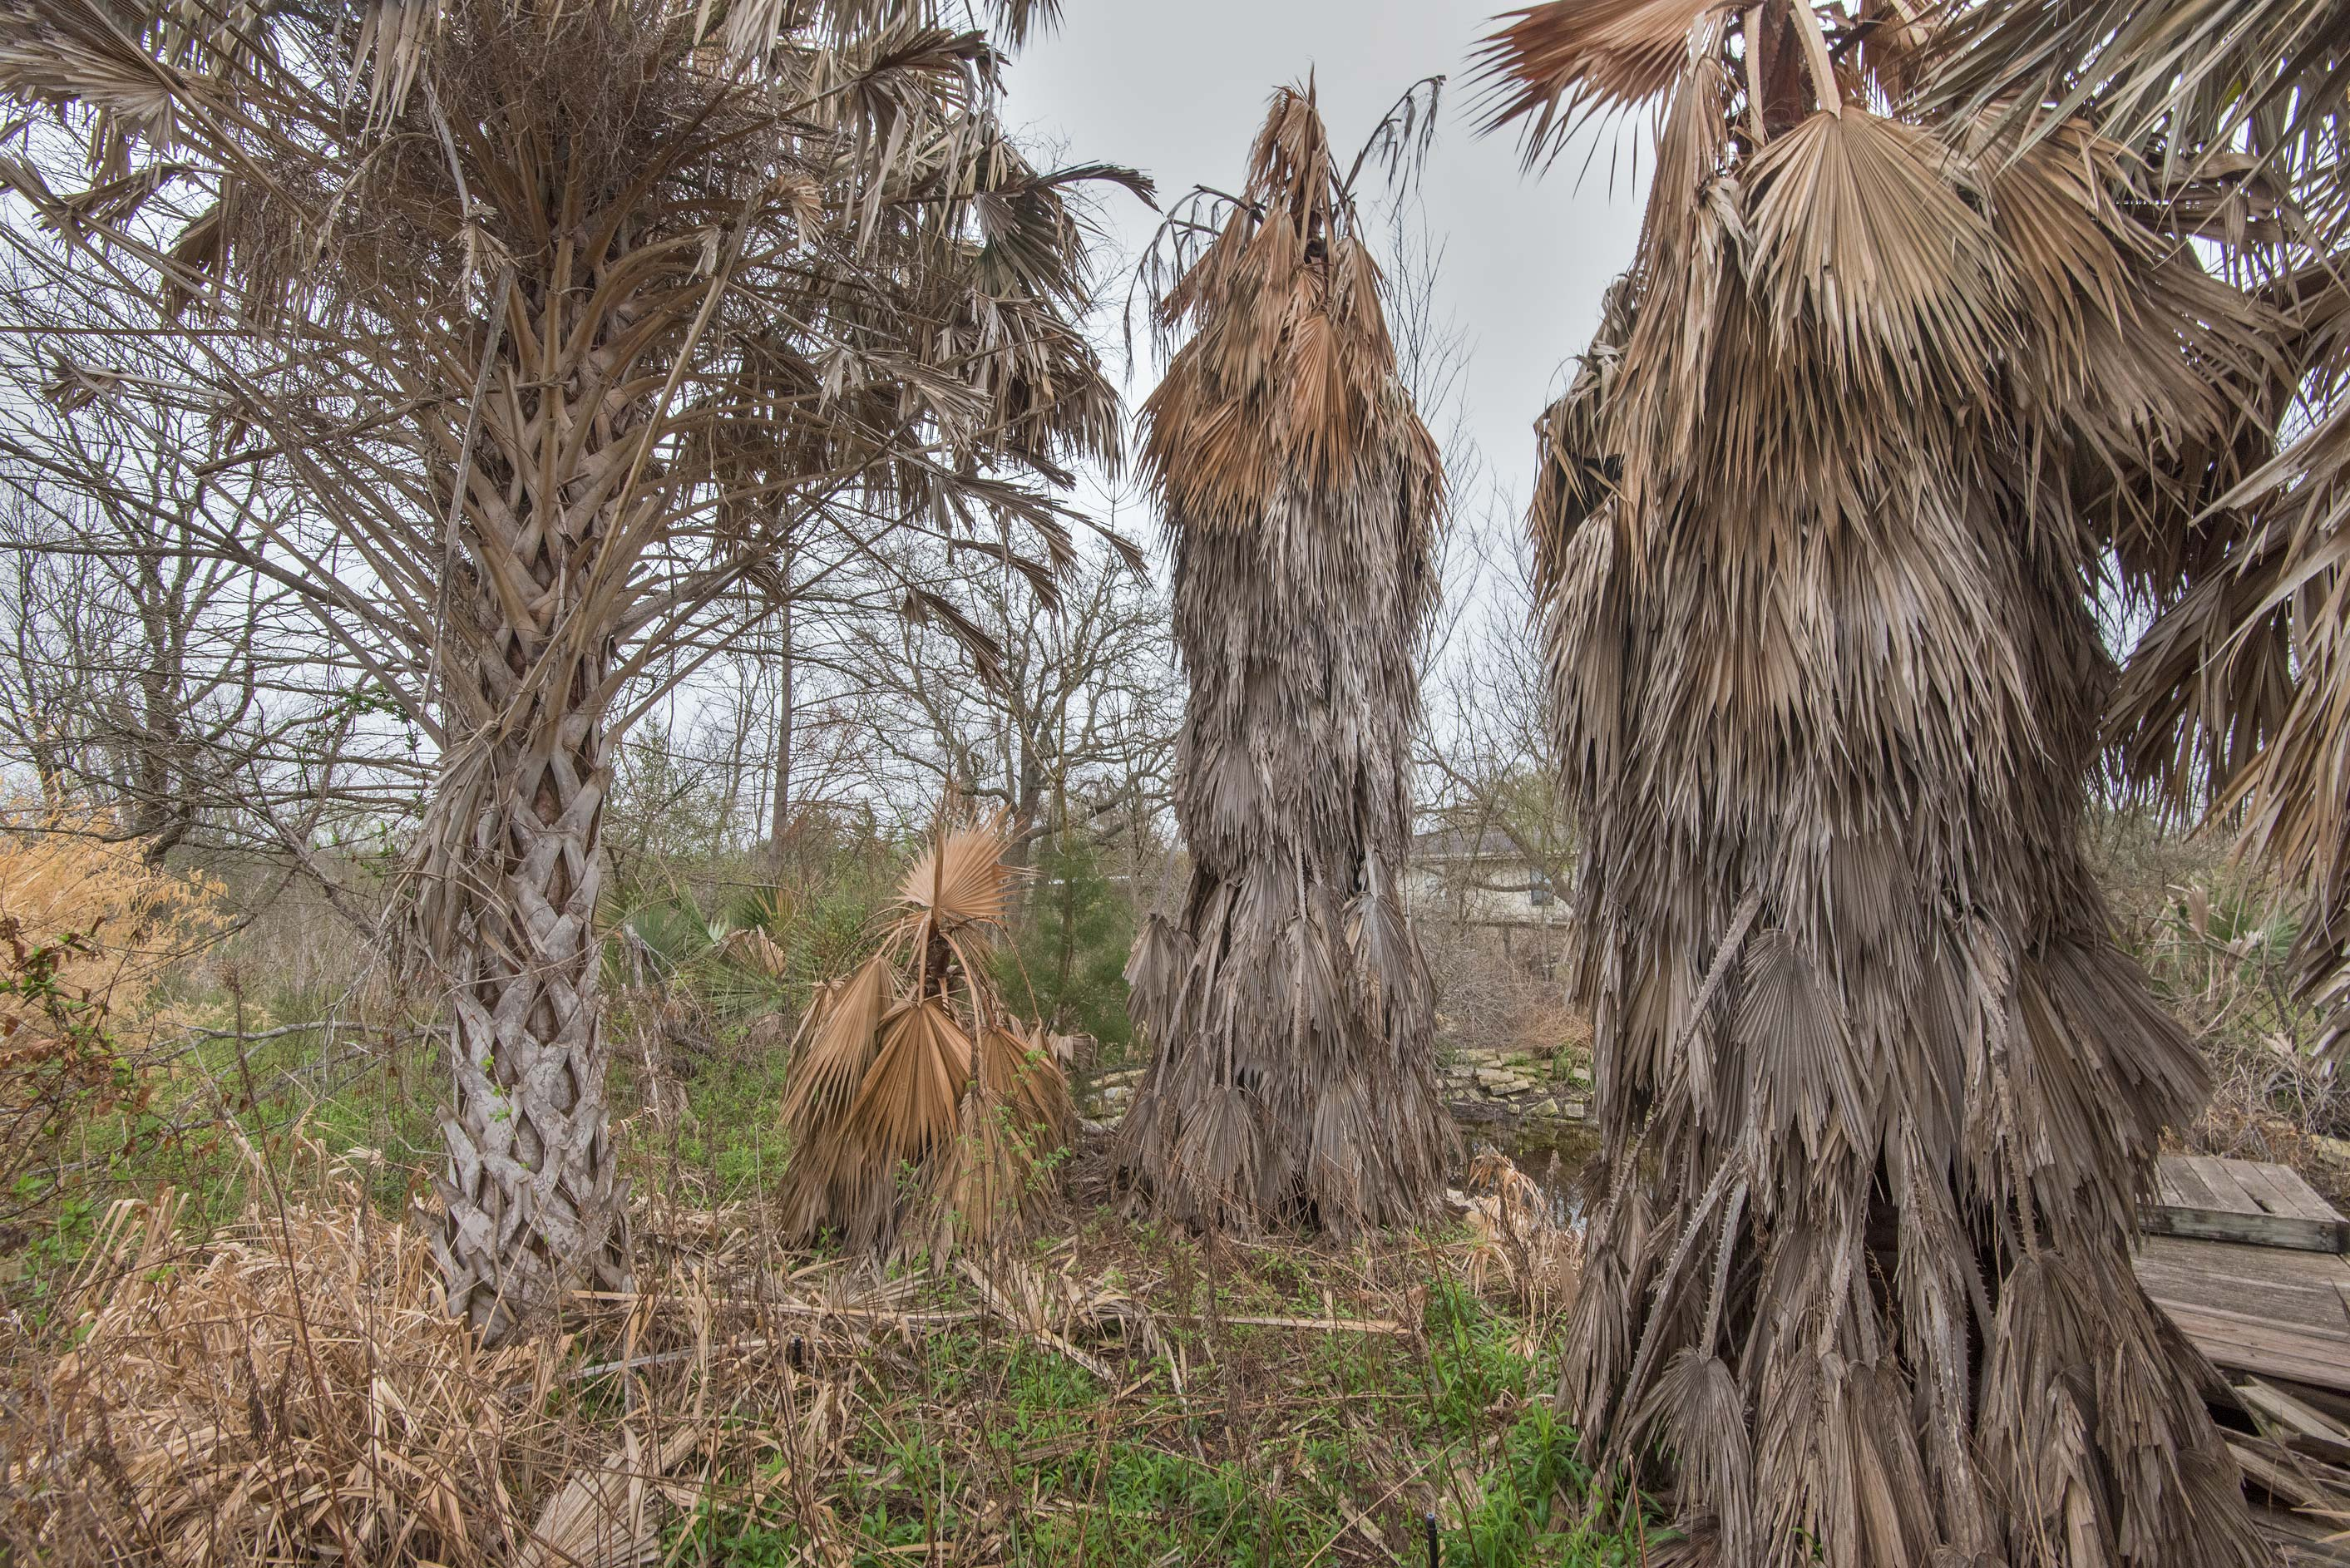 Dead palms in TAMU Horticultural Gardens in Texas...M University. College Station, Texas